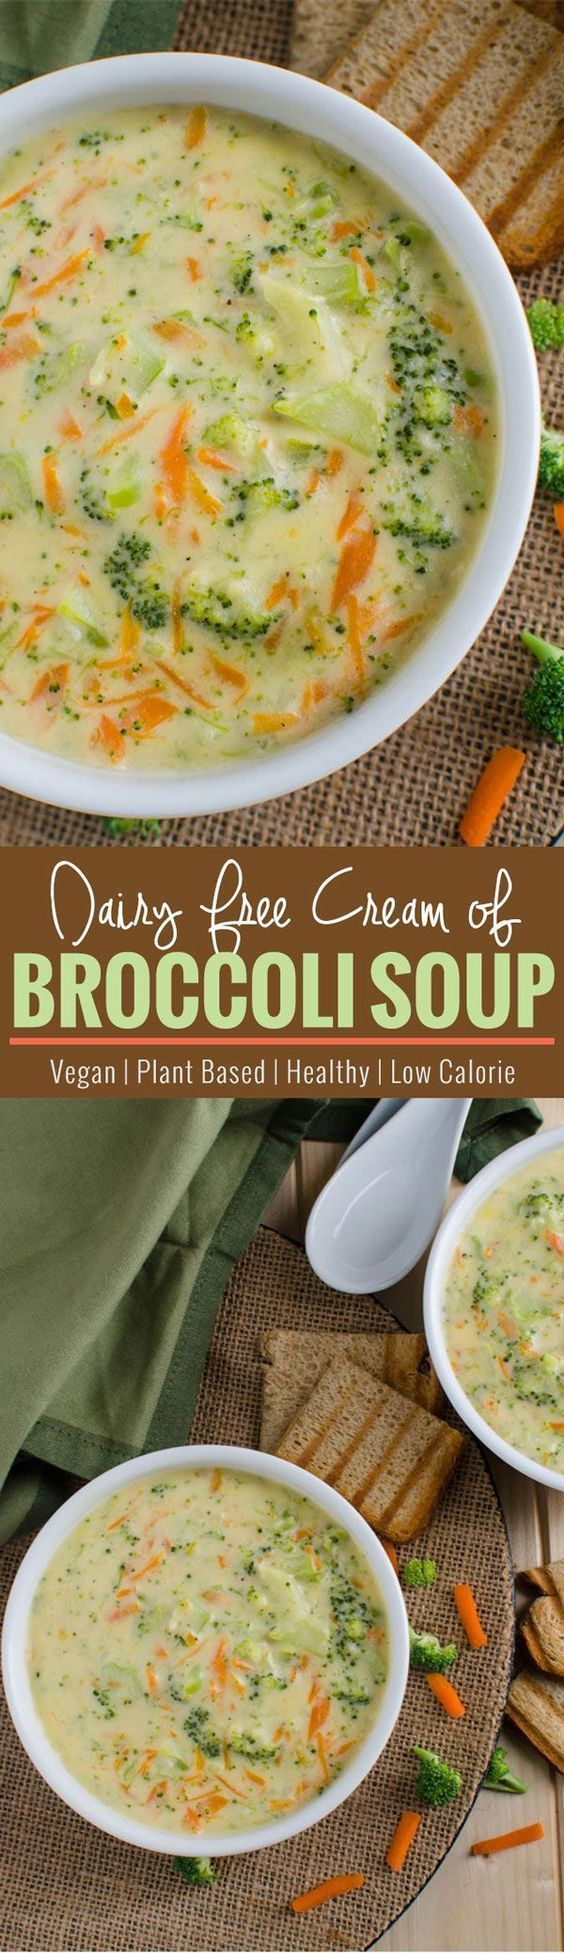 How Many Calories In A Cup Of Cream Of Broccoli Soup-8576